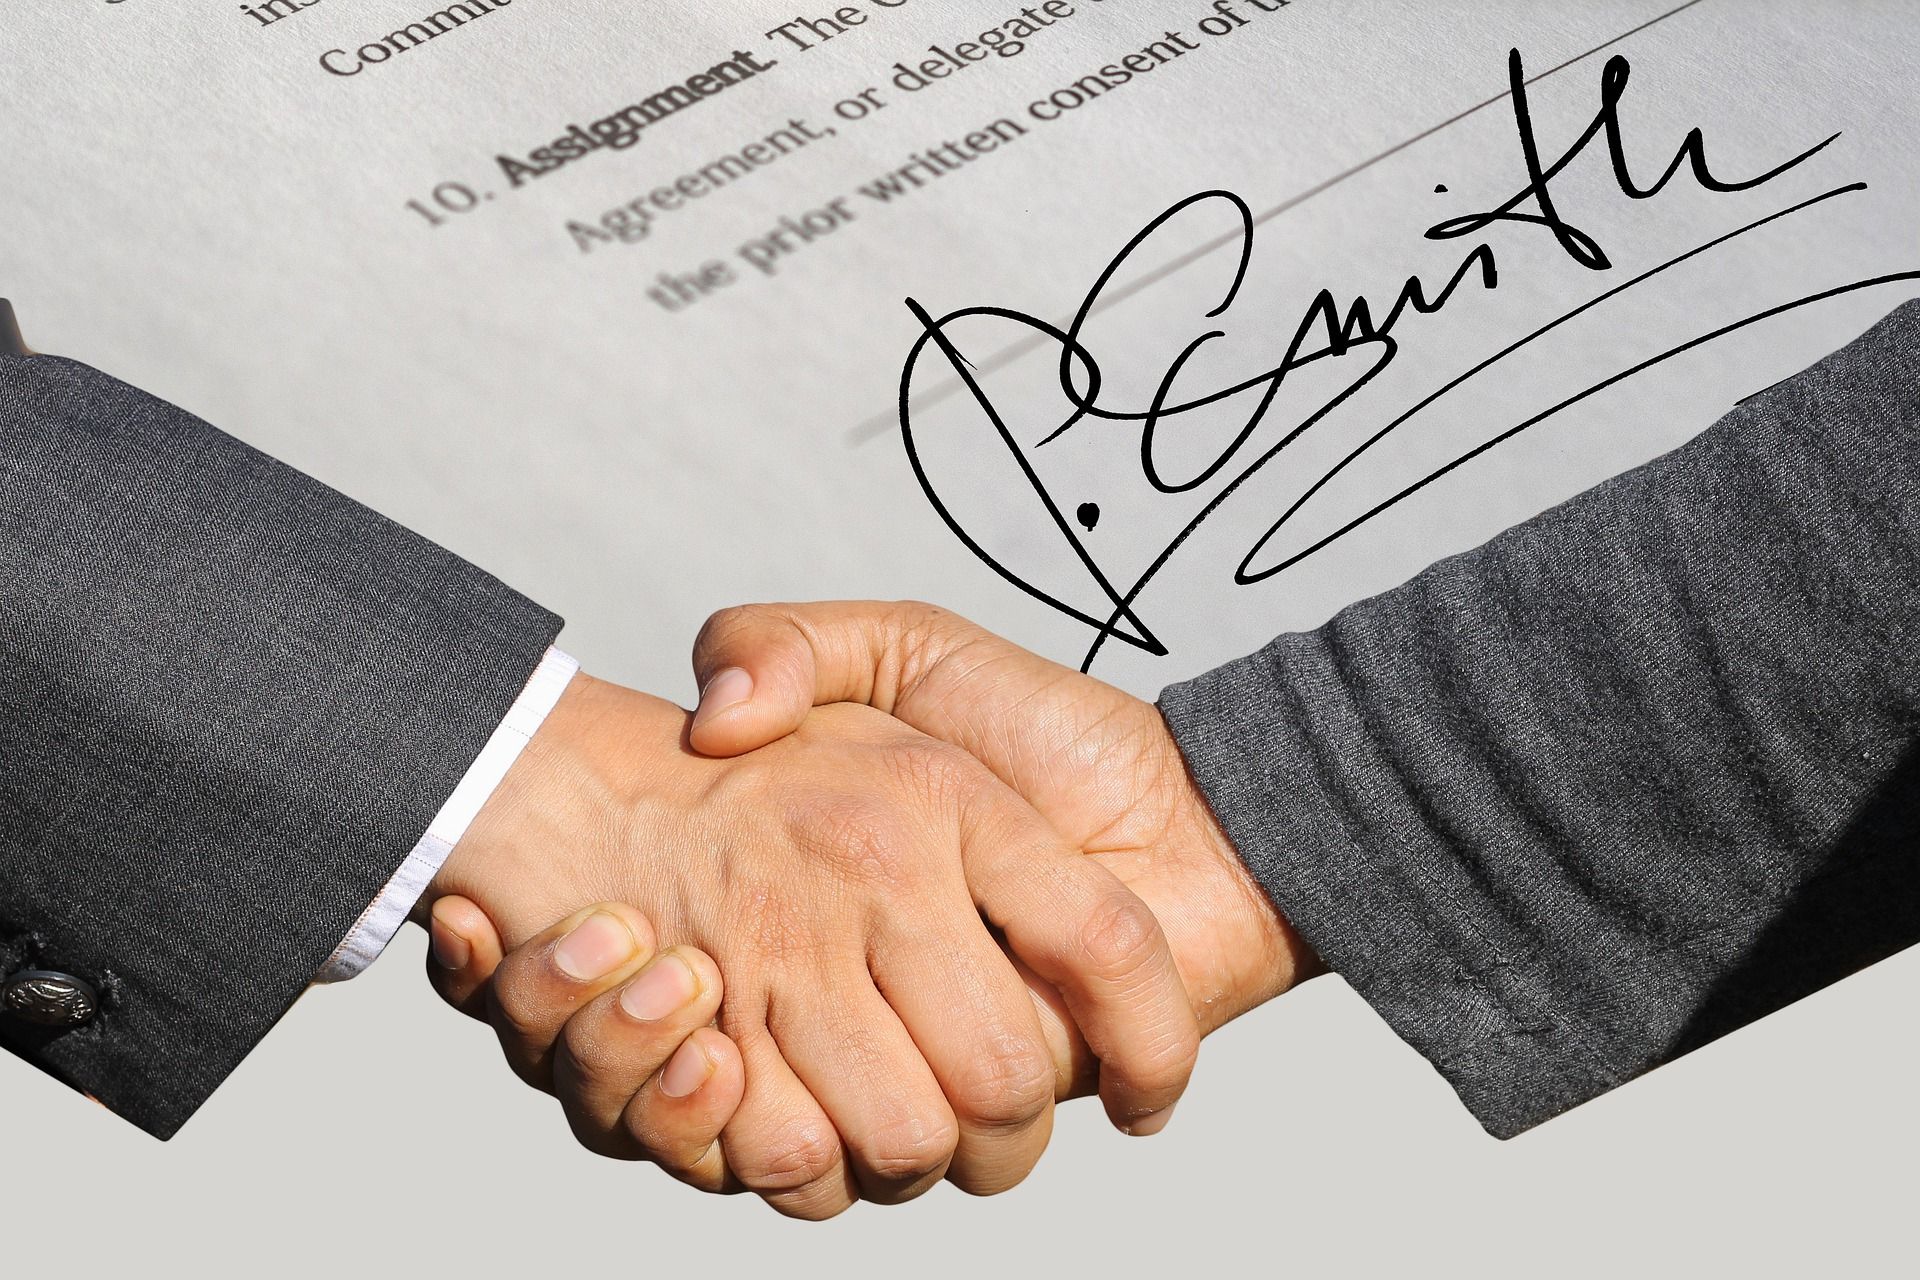 What is the value of an unregistered agreement to sell?